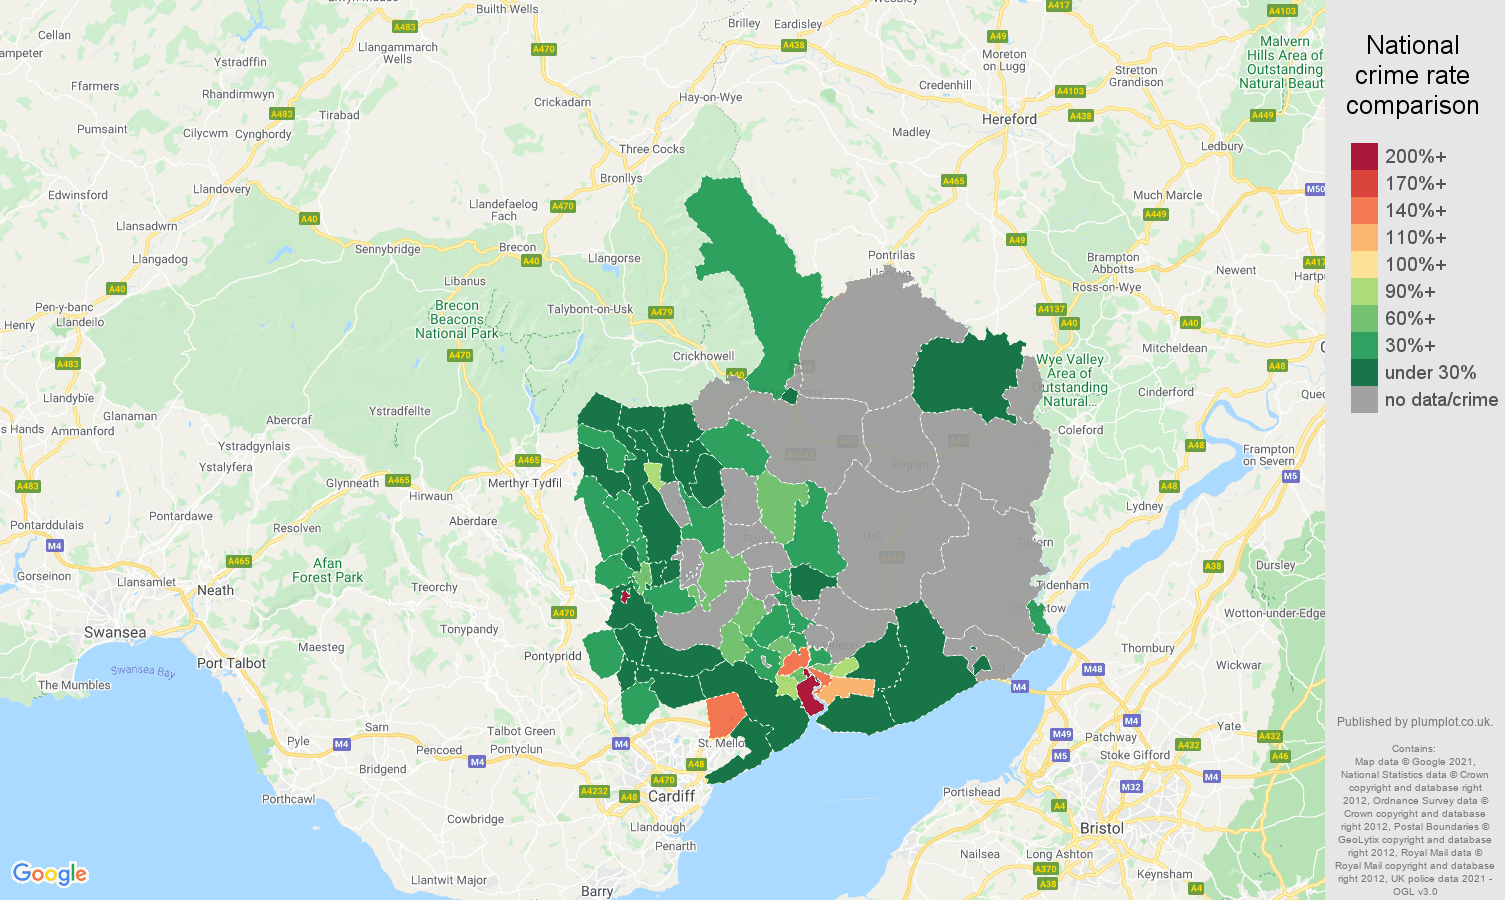 Gwent robbery crime rate comparison map